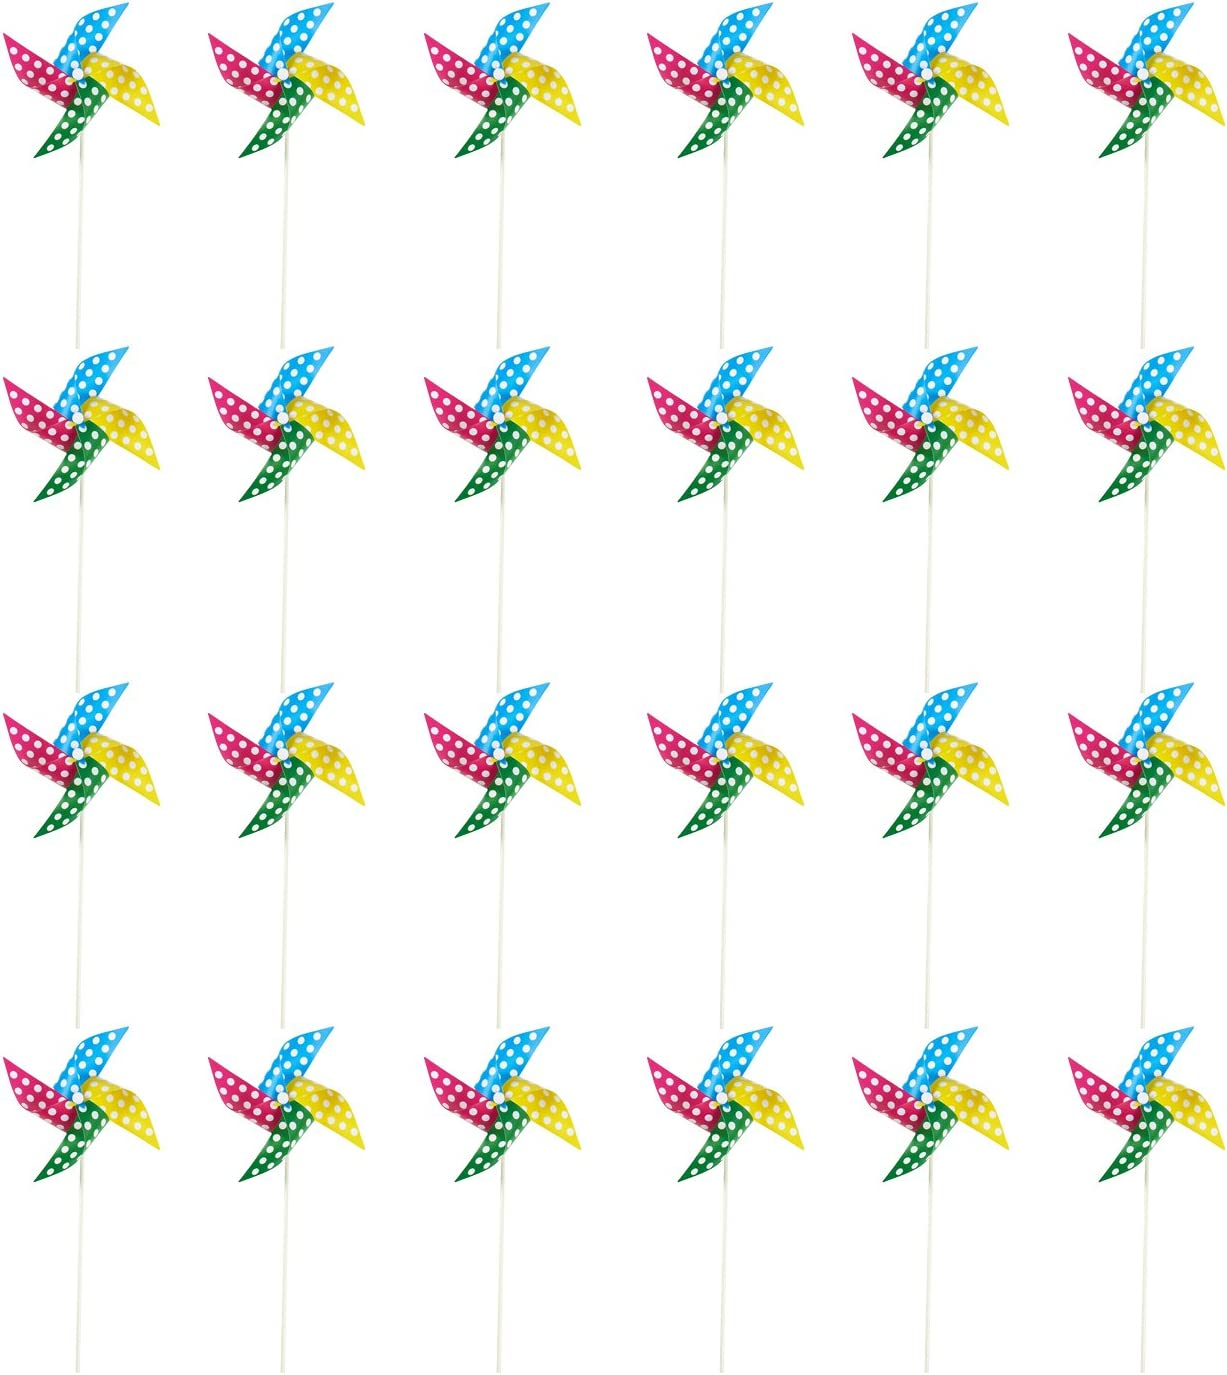 Pinwheels - Pack of 24, 15.5-Inch Polka Dot Pinwheels - Value Pack - Suitable as Kids Toy or Garden, Party, Outdoor, Yard, Decoration | Multicolored, 15.5 x 8 x 0.25 Inches